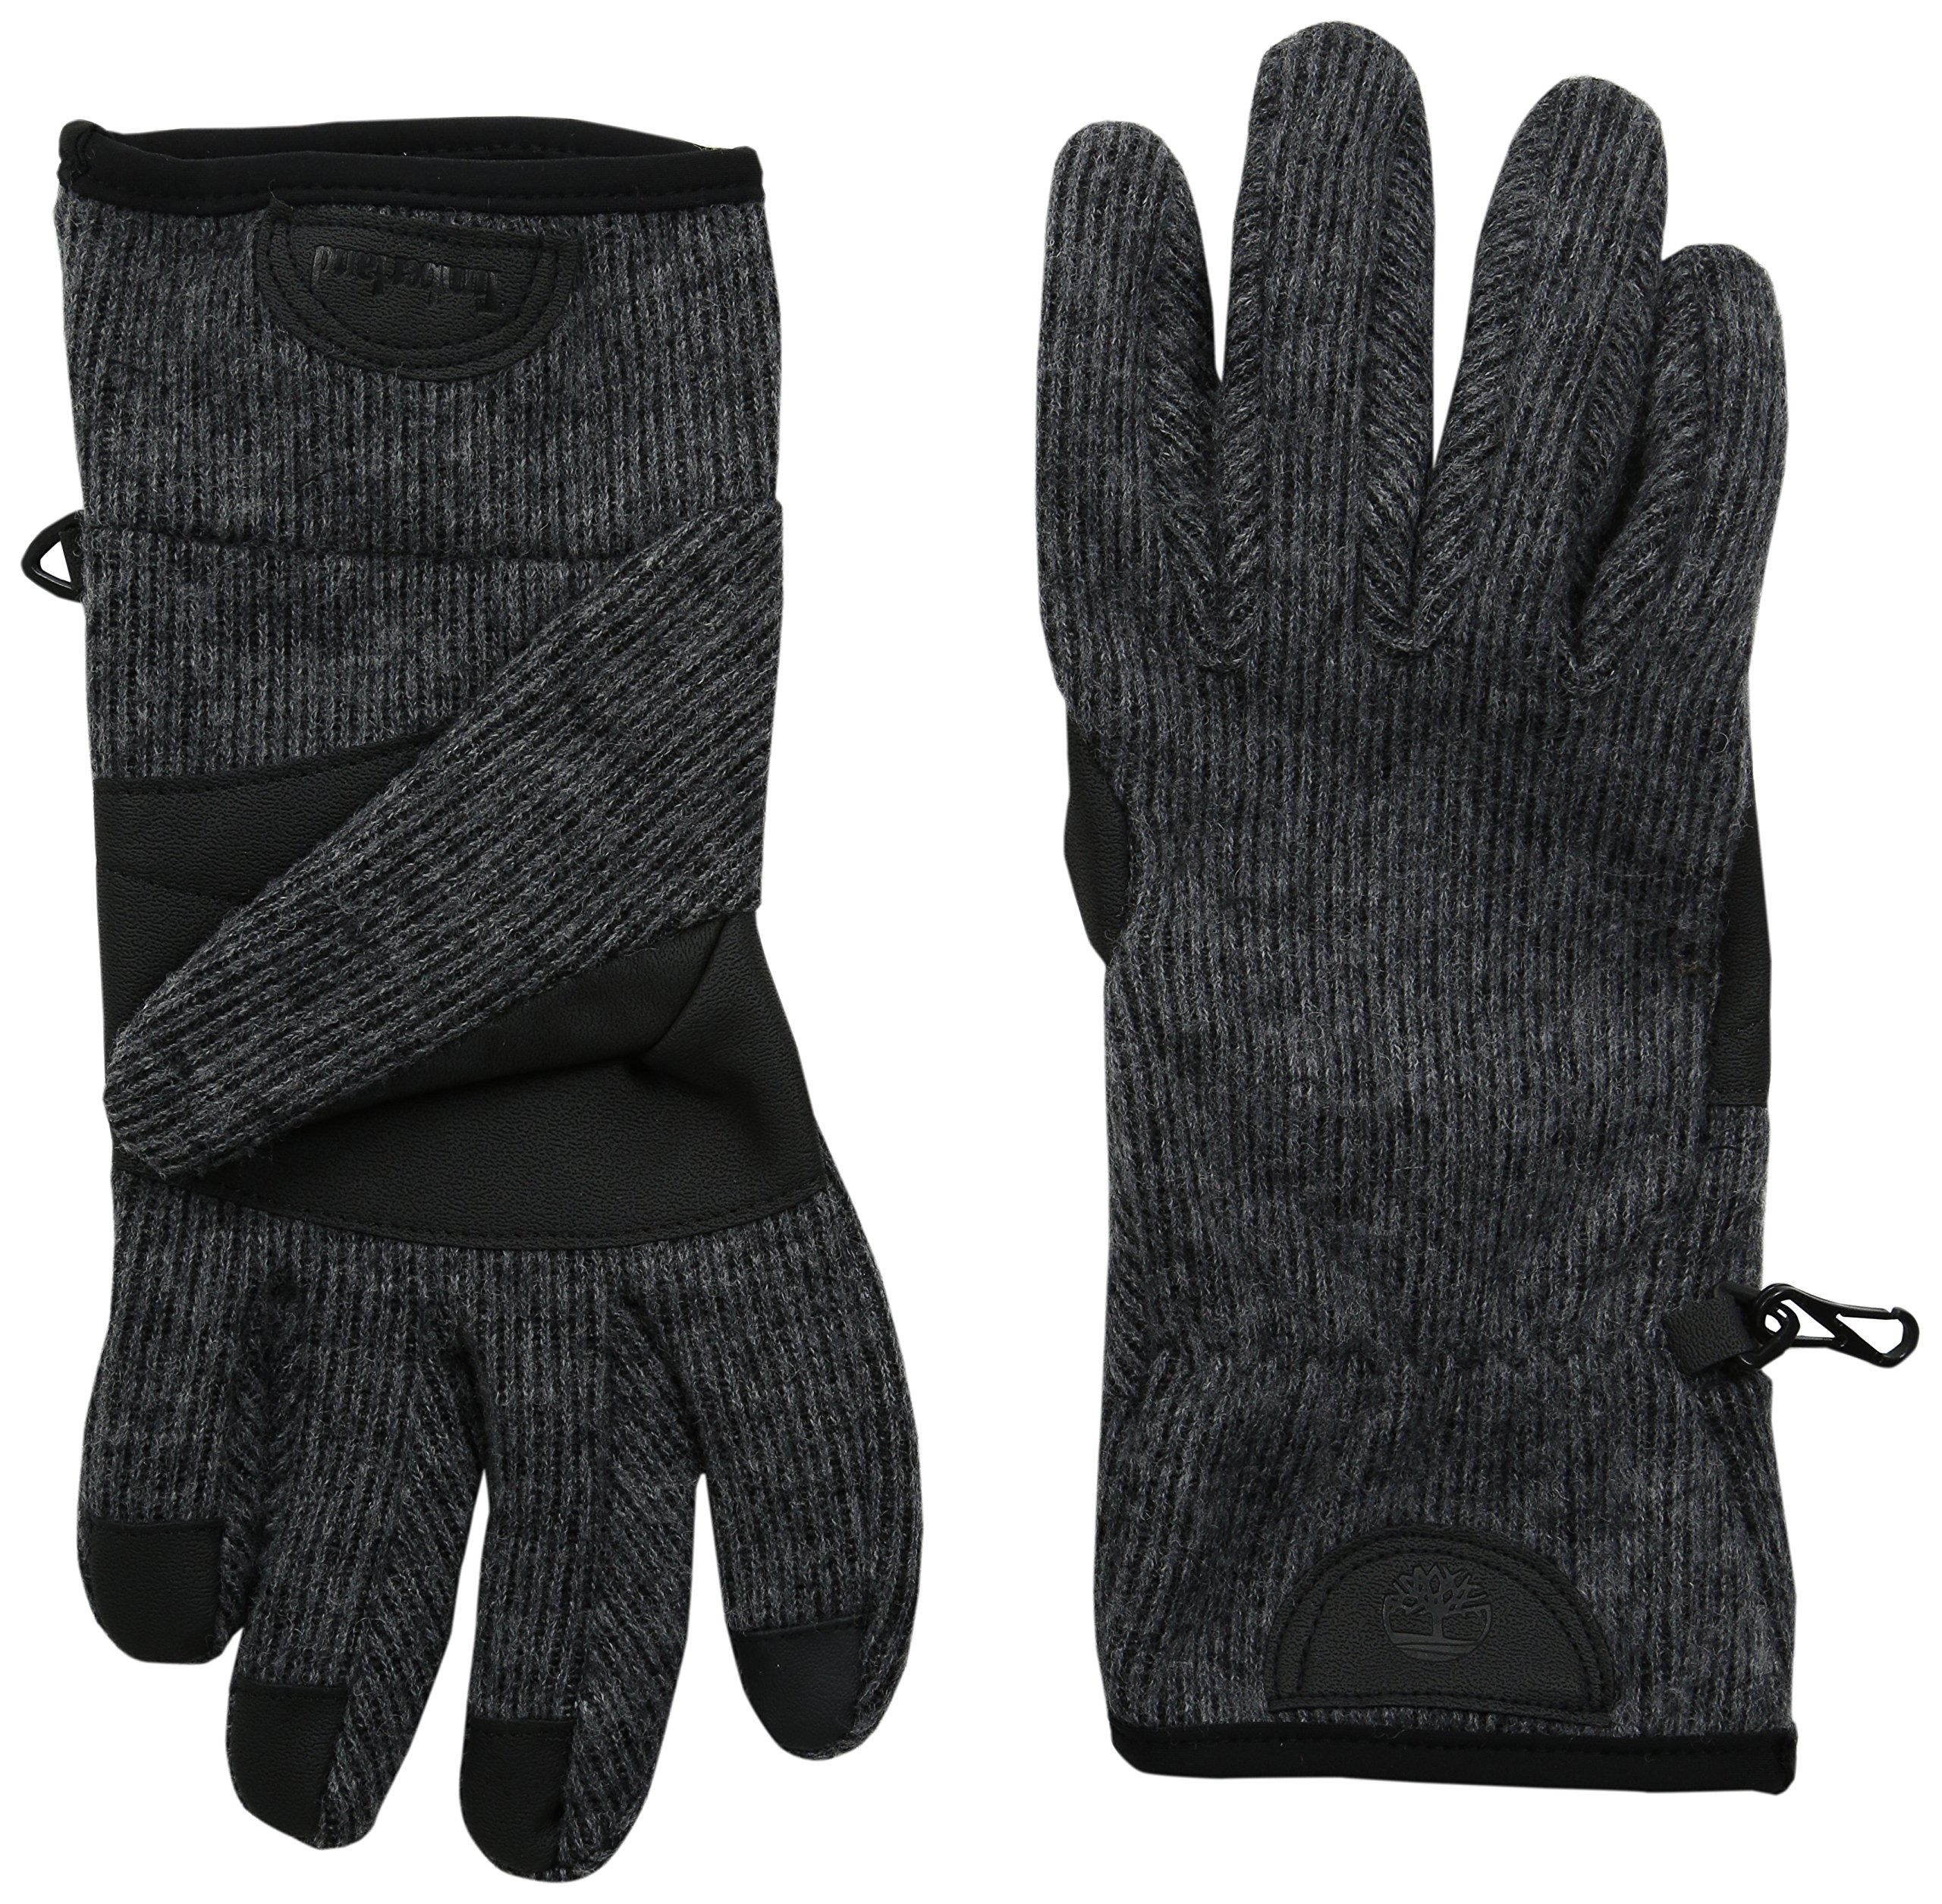 Timberland Men's Ribbed Knit Wool Blend Glove with Touchscreen Technology, Charcoal, X-Large